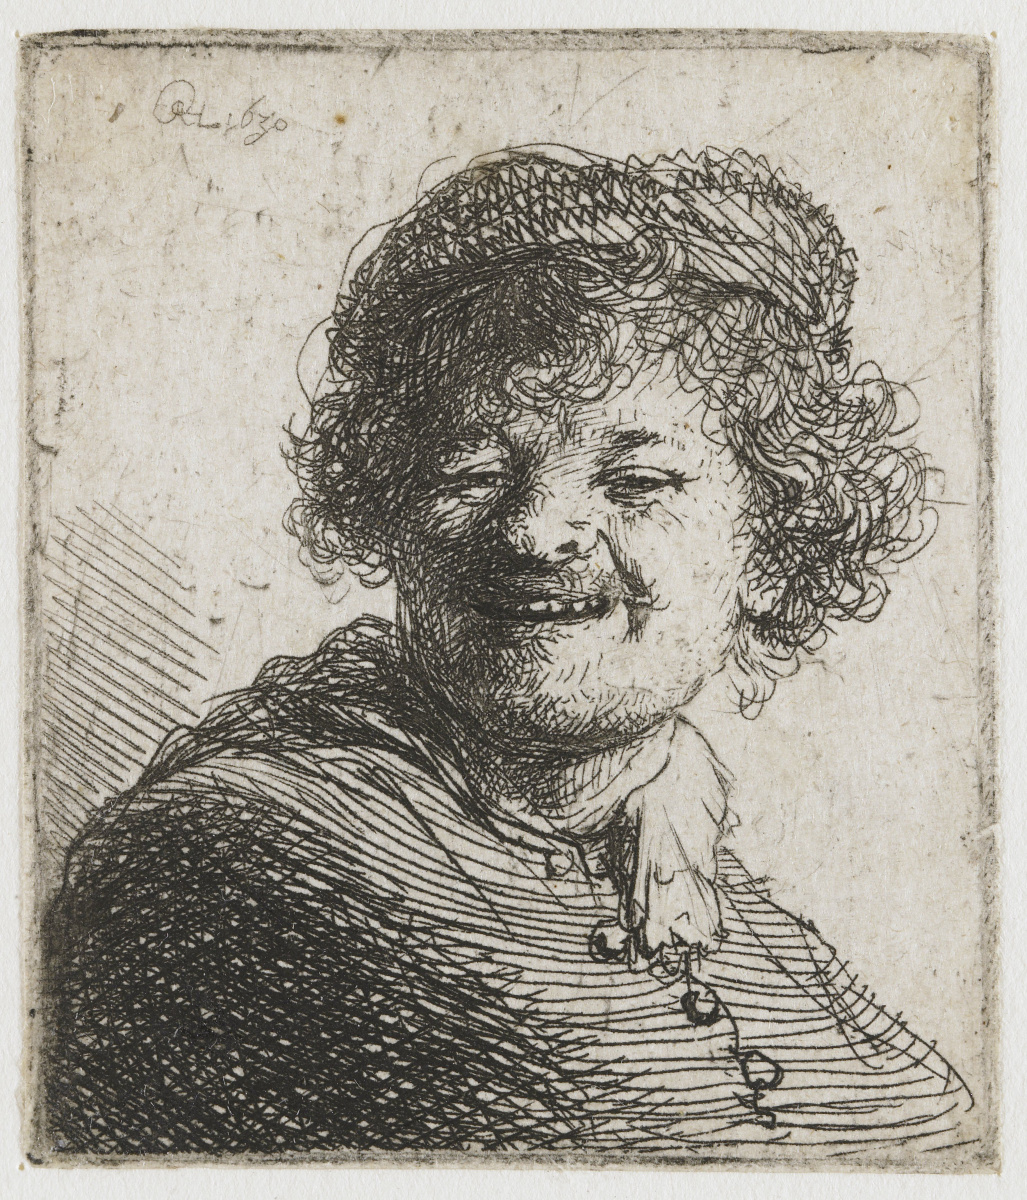 Rembrandt Harmenszoon van Rijn. The smiling self portrait of the artist in the hat